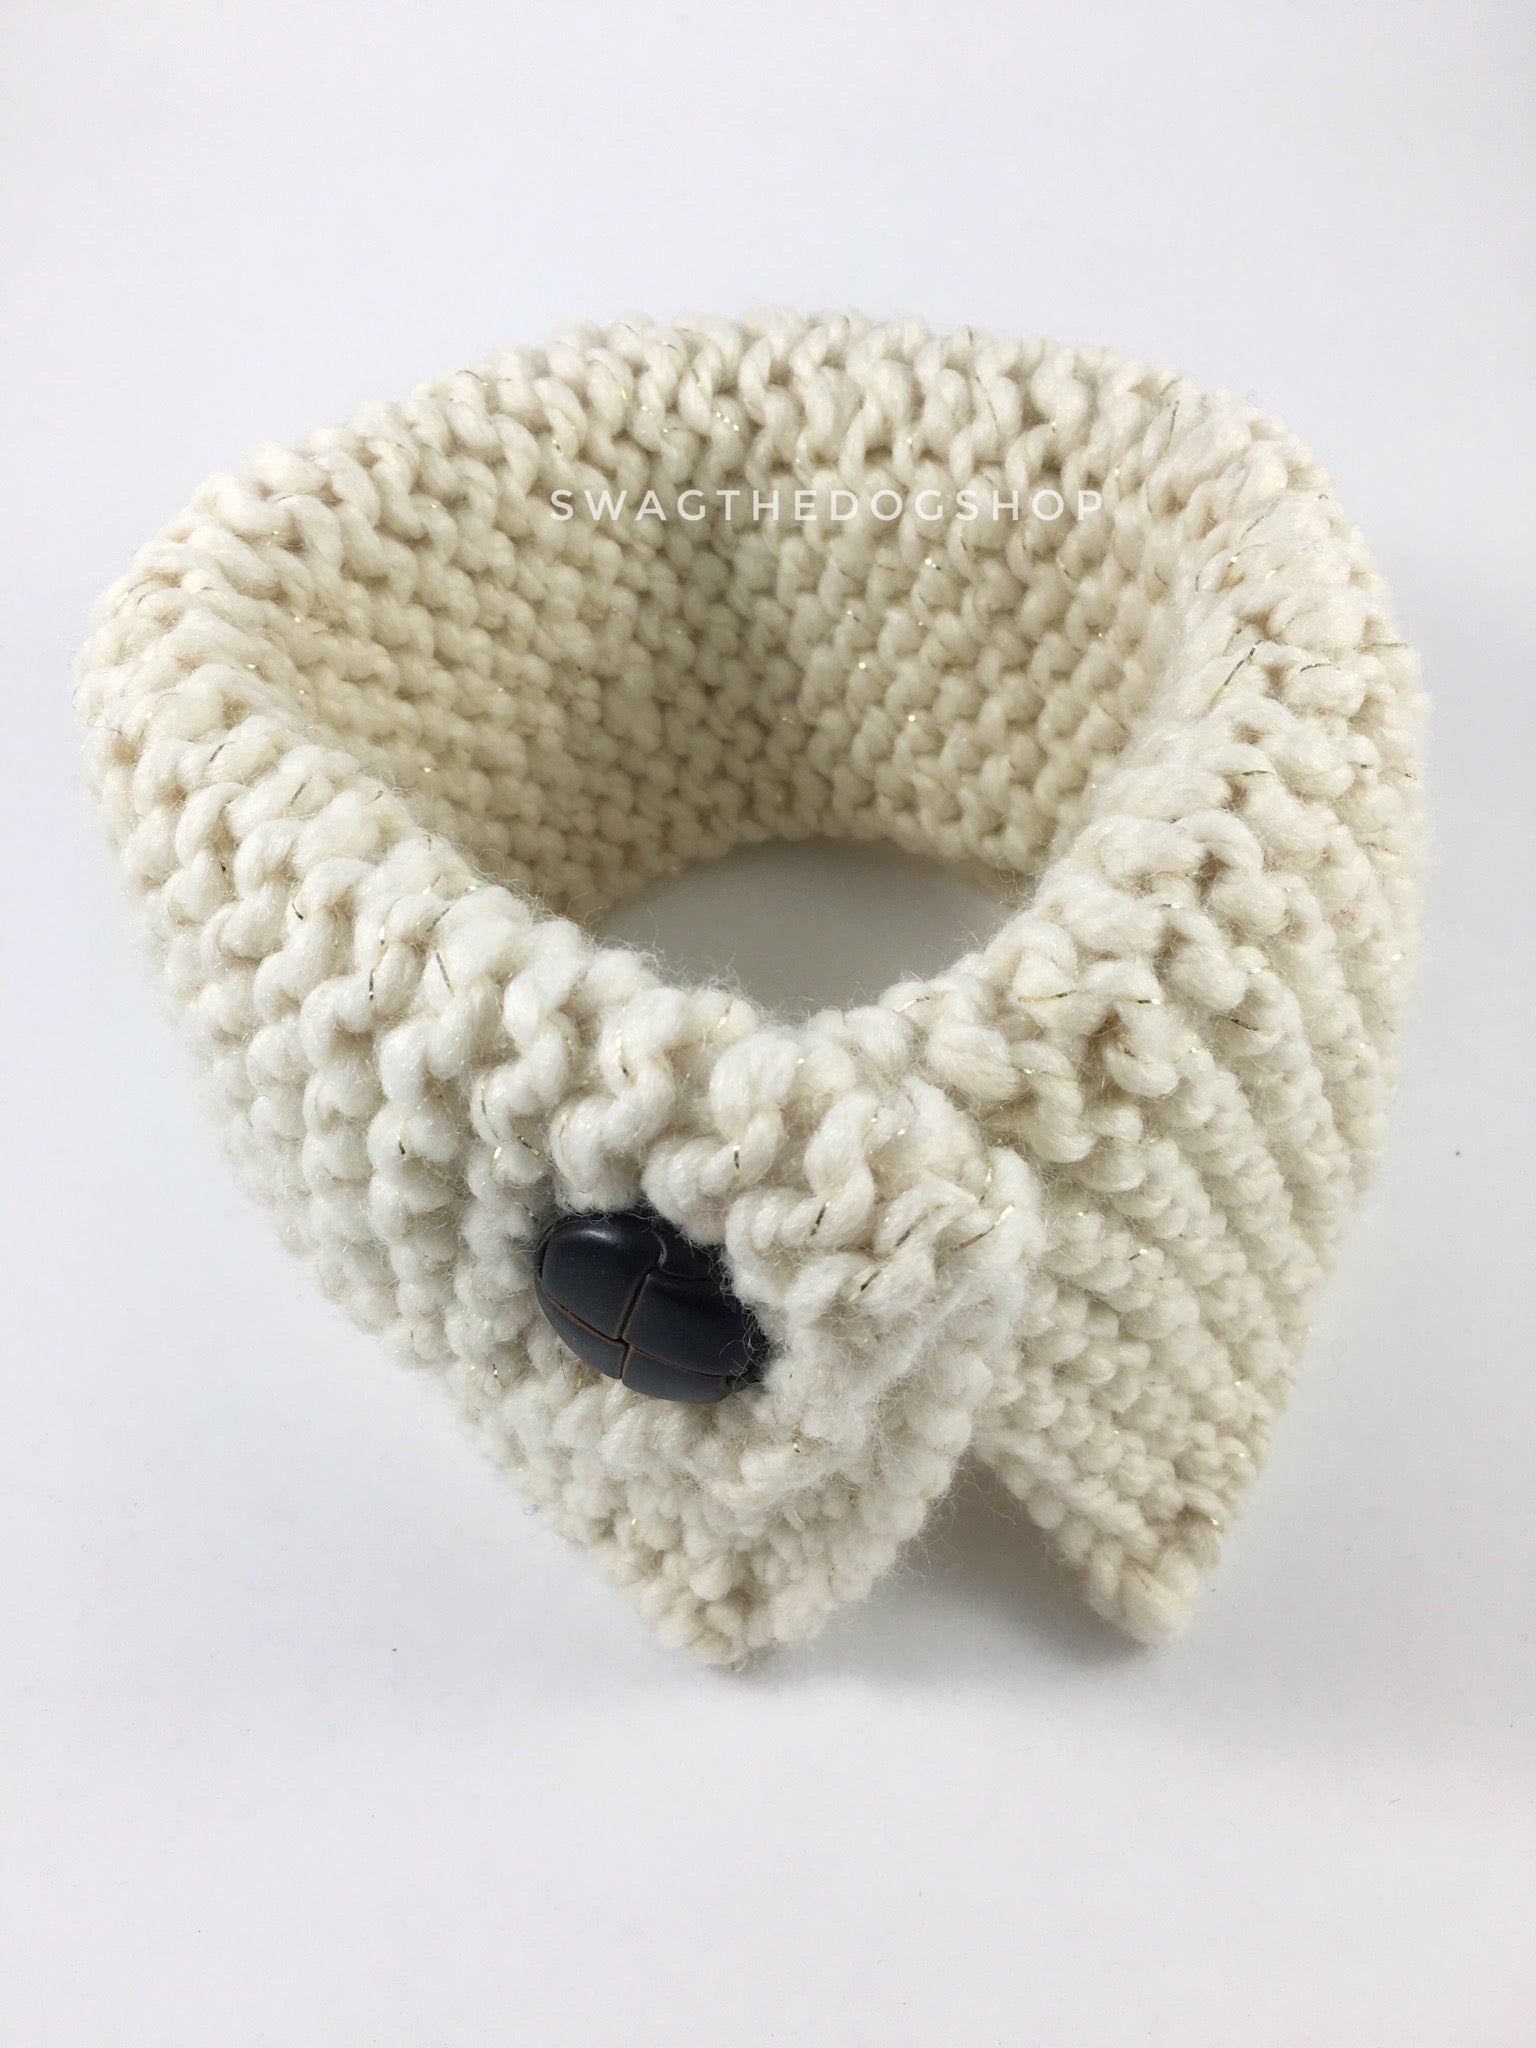 Starlight Sparkle Swagsnood - Product Above View. Cream Color with Sparkle Thread Dog Snood with Accent Button